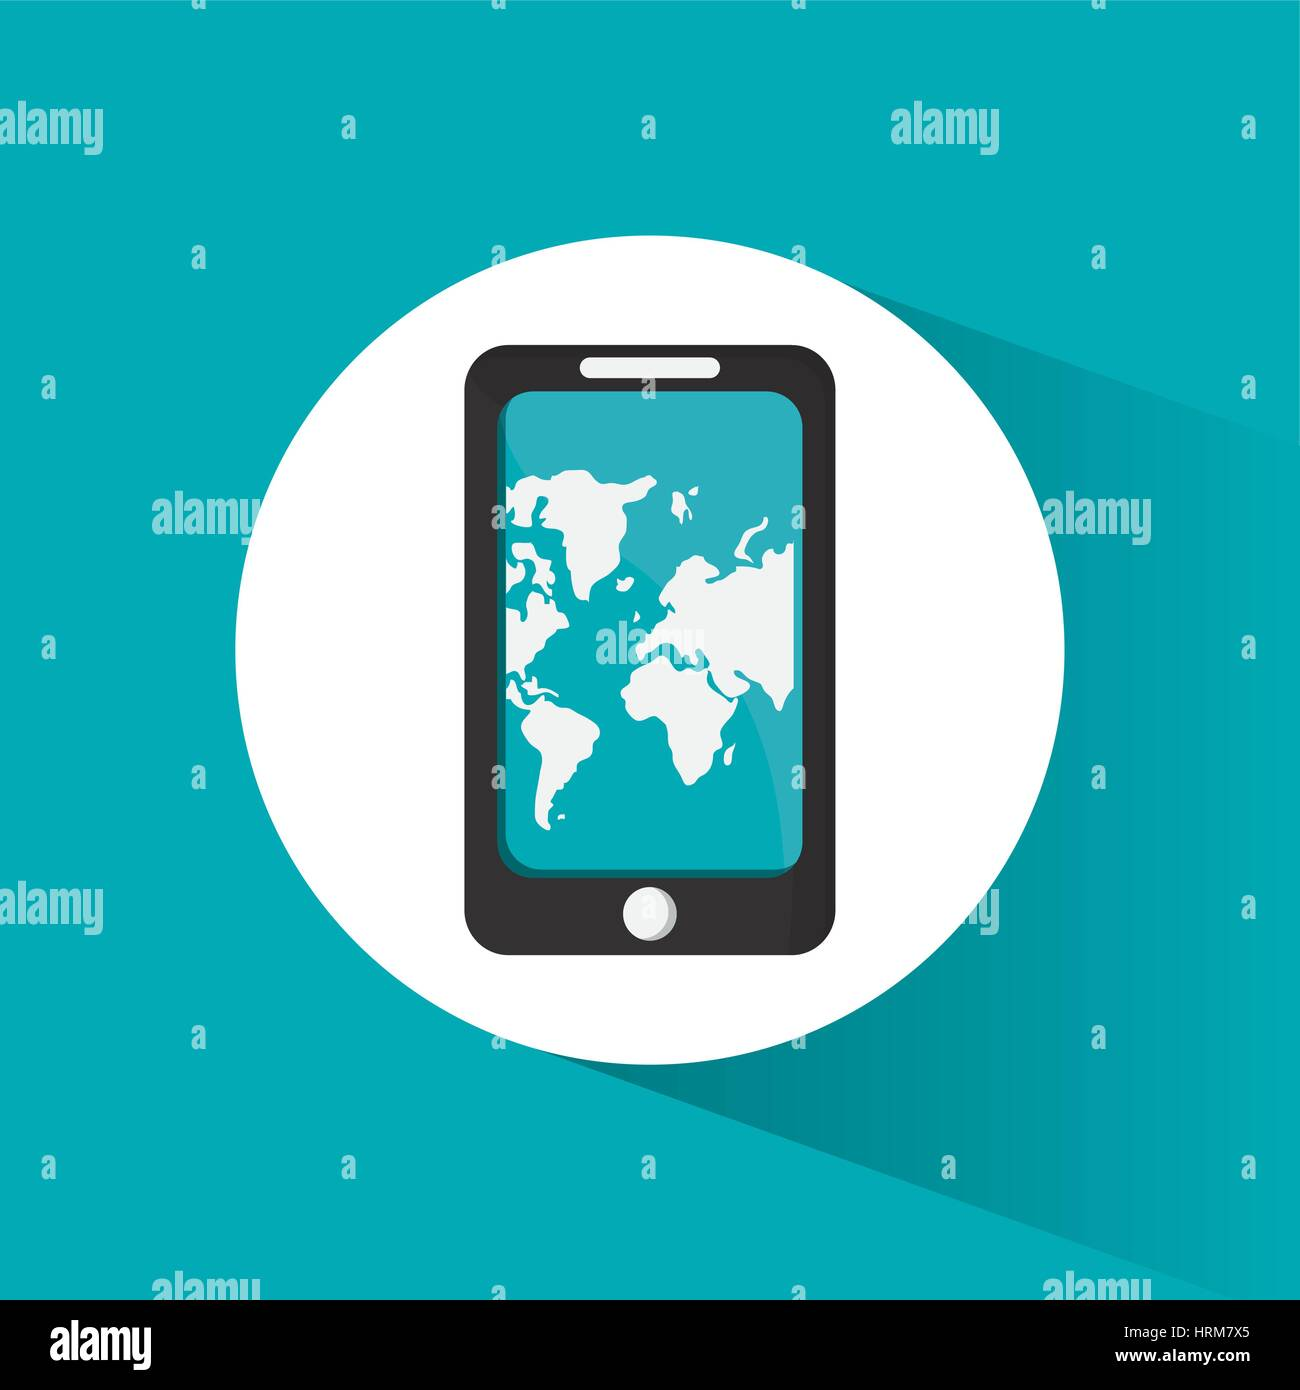 smartphone travel application map - Stock Image